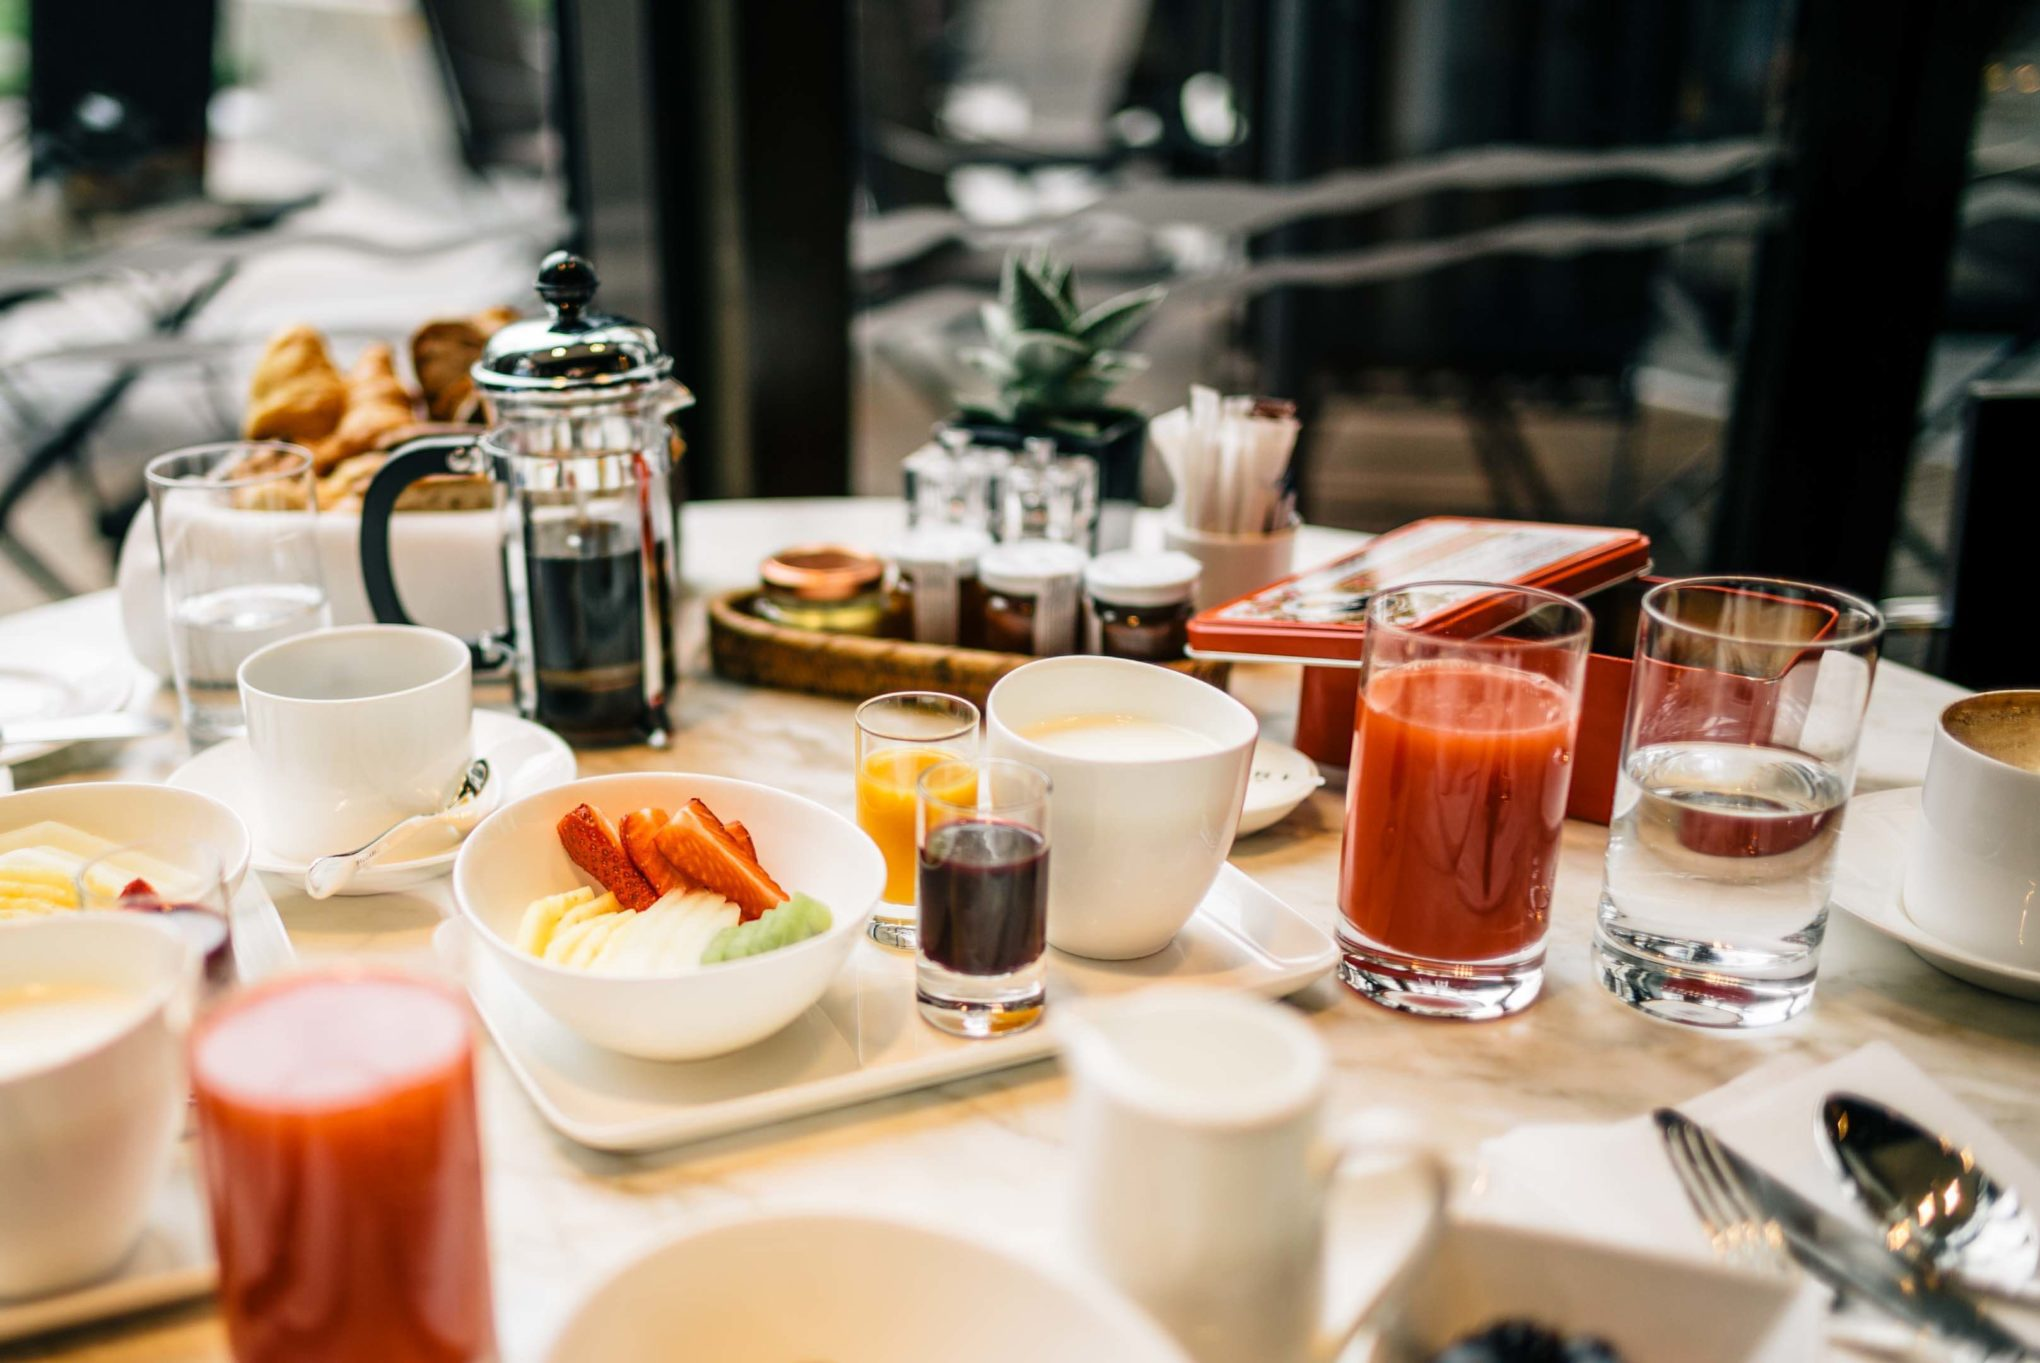 So many options for breakfast at Hotel Bulgari Milano, The Taste SF